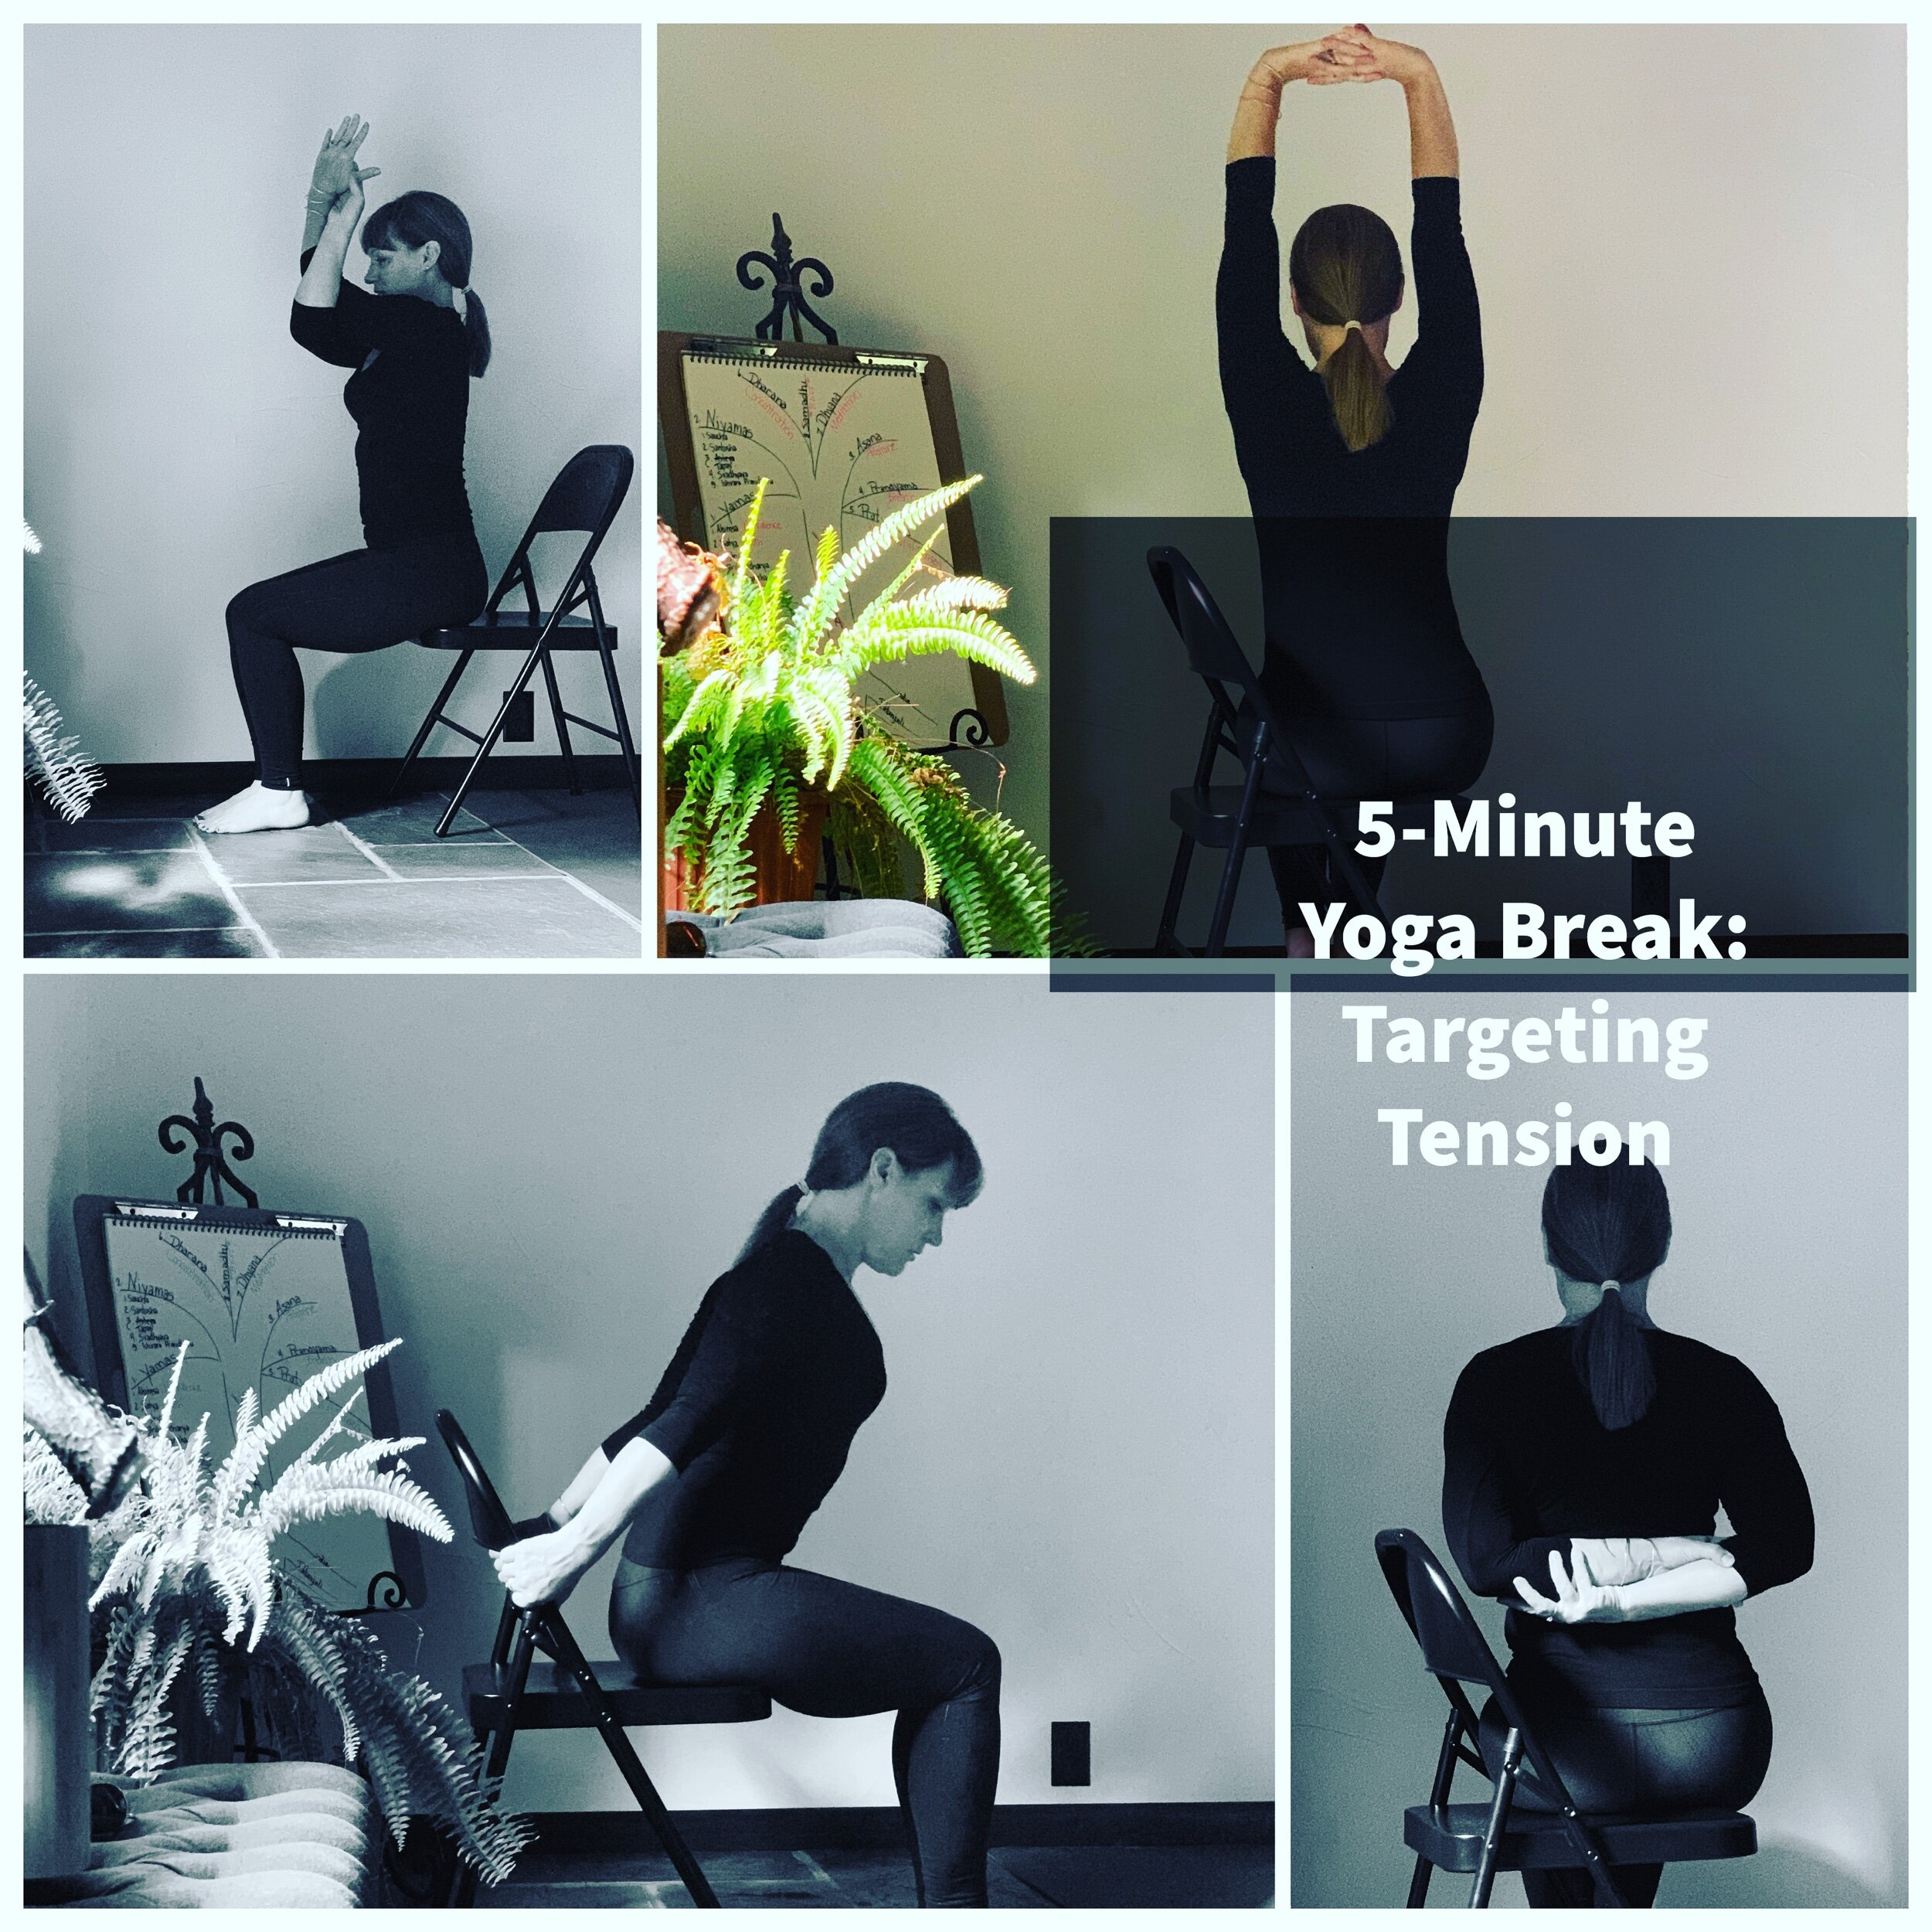 "Corporate Wellness Tip of the Week: - It's Wellness Wednesday with a 5-Minute Break for alleviating Tension during your workday. Each posture can be done from a chair. I recommend about 5-8 breaths per pose. TIP: Focus on Breathing more slowly than normal- Begin with a very long slow EXHALE followed by an inhale that feels ""bright"" or ""open"". Just notice how this affects you. All Postures have been reviewed in weekly classes, for more on these visit my studio @elements.rising or ask your favorite yoga teacher for assistance!Learn these and more solutions for everyday wellness by stopping into the studio and keep posted every Wednesday for tips taken directly from my corporate wellness programs. http://elements4yoga.com/workplace-wellness#corporatewellness #humpdaymotivation #alignmentyoga #chairyoga #wellnesswednesday #officeyoga #wellnessthatworks #healthylifestyles #healthyworkplace #corporatelife #yogaeveryday #yogainspiration #yogabreath #yogaatwork"